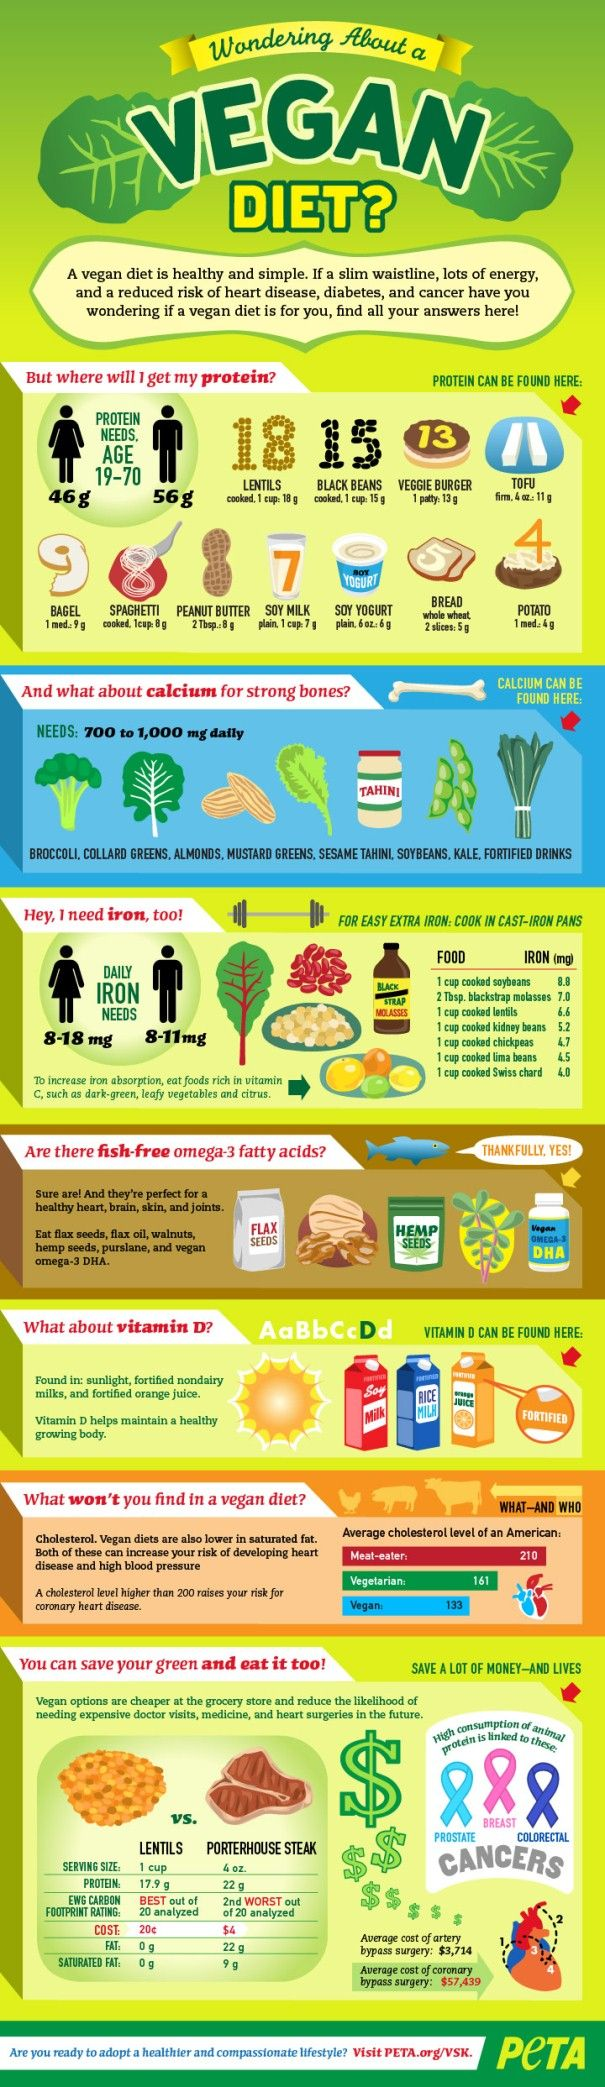 regardless vegan or not a great chart to know what nutrients you can get out of food instead of always relying on just eating meat